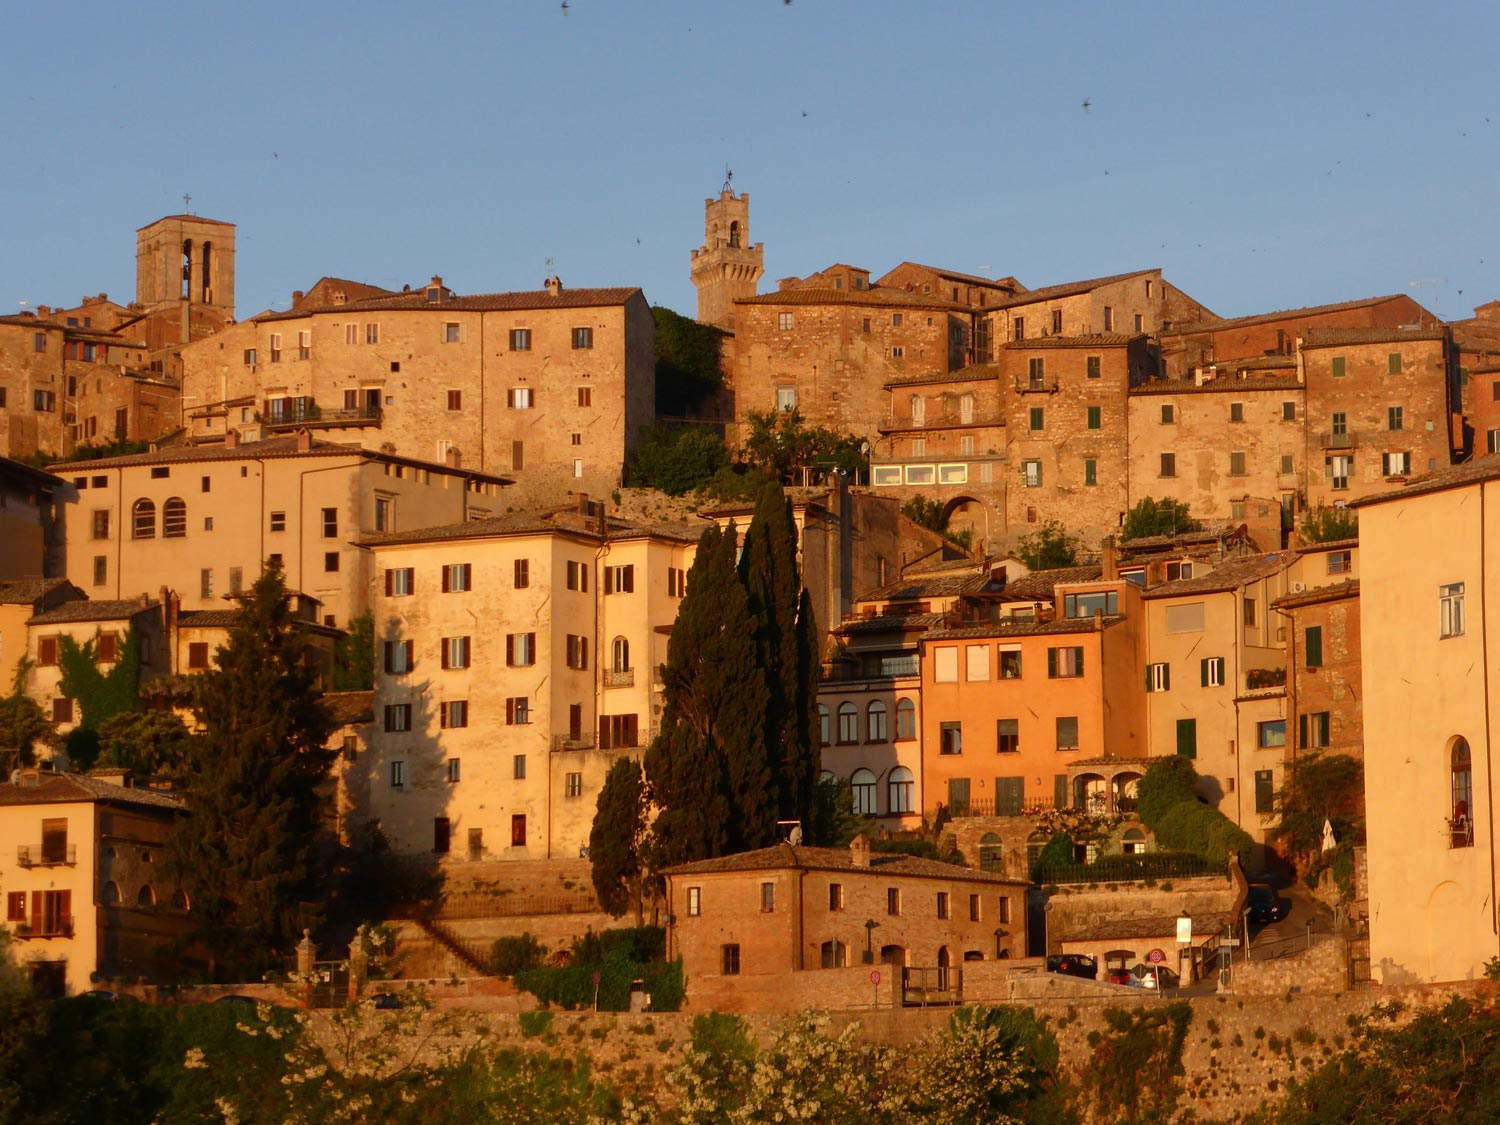 Montepulciano in the early morning